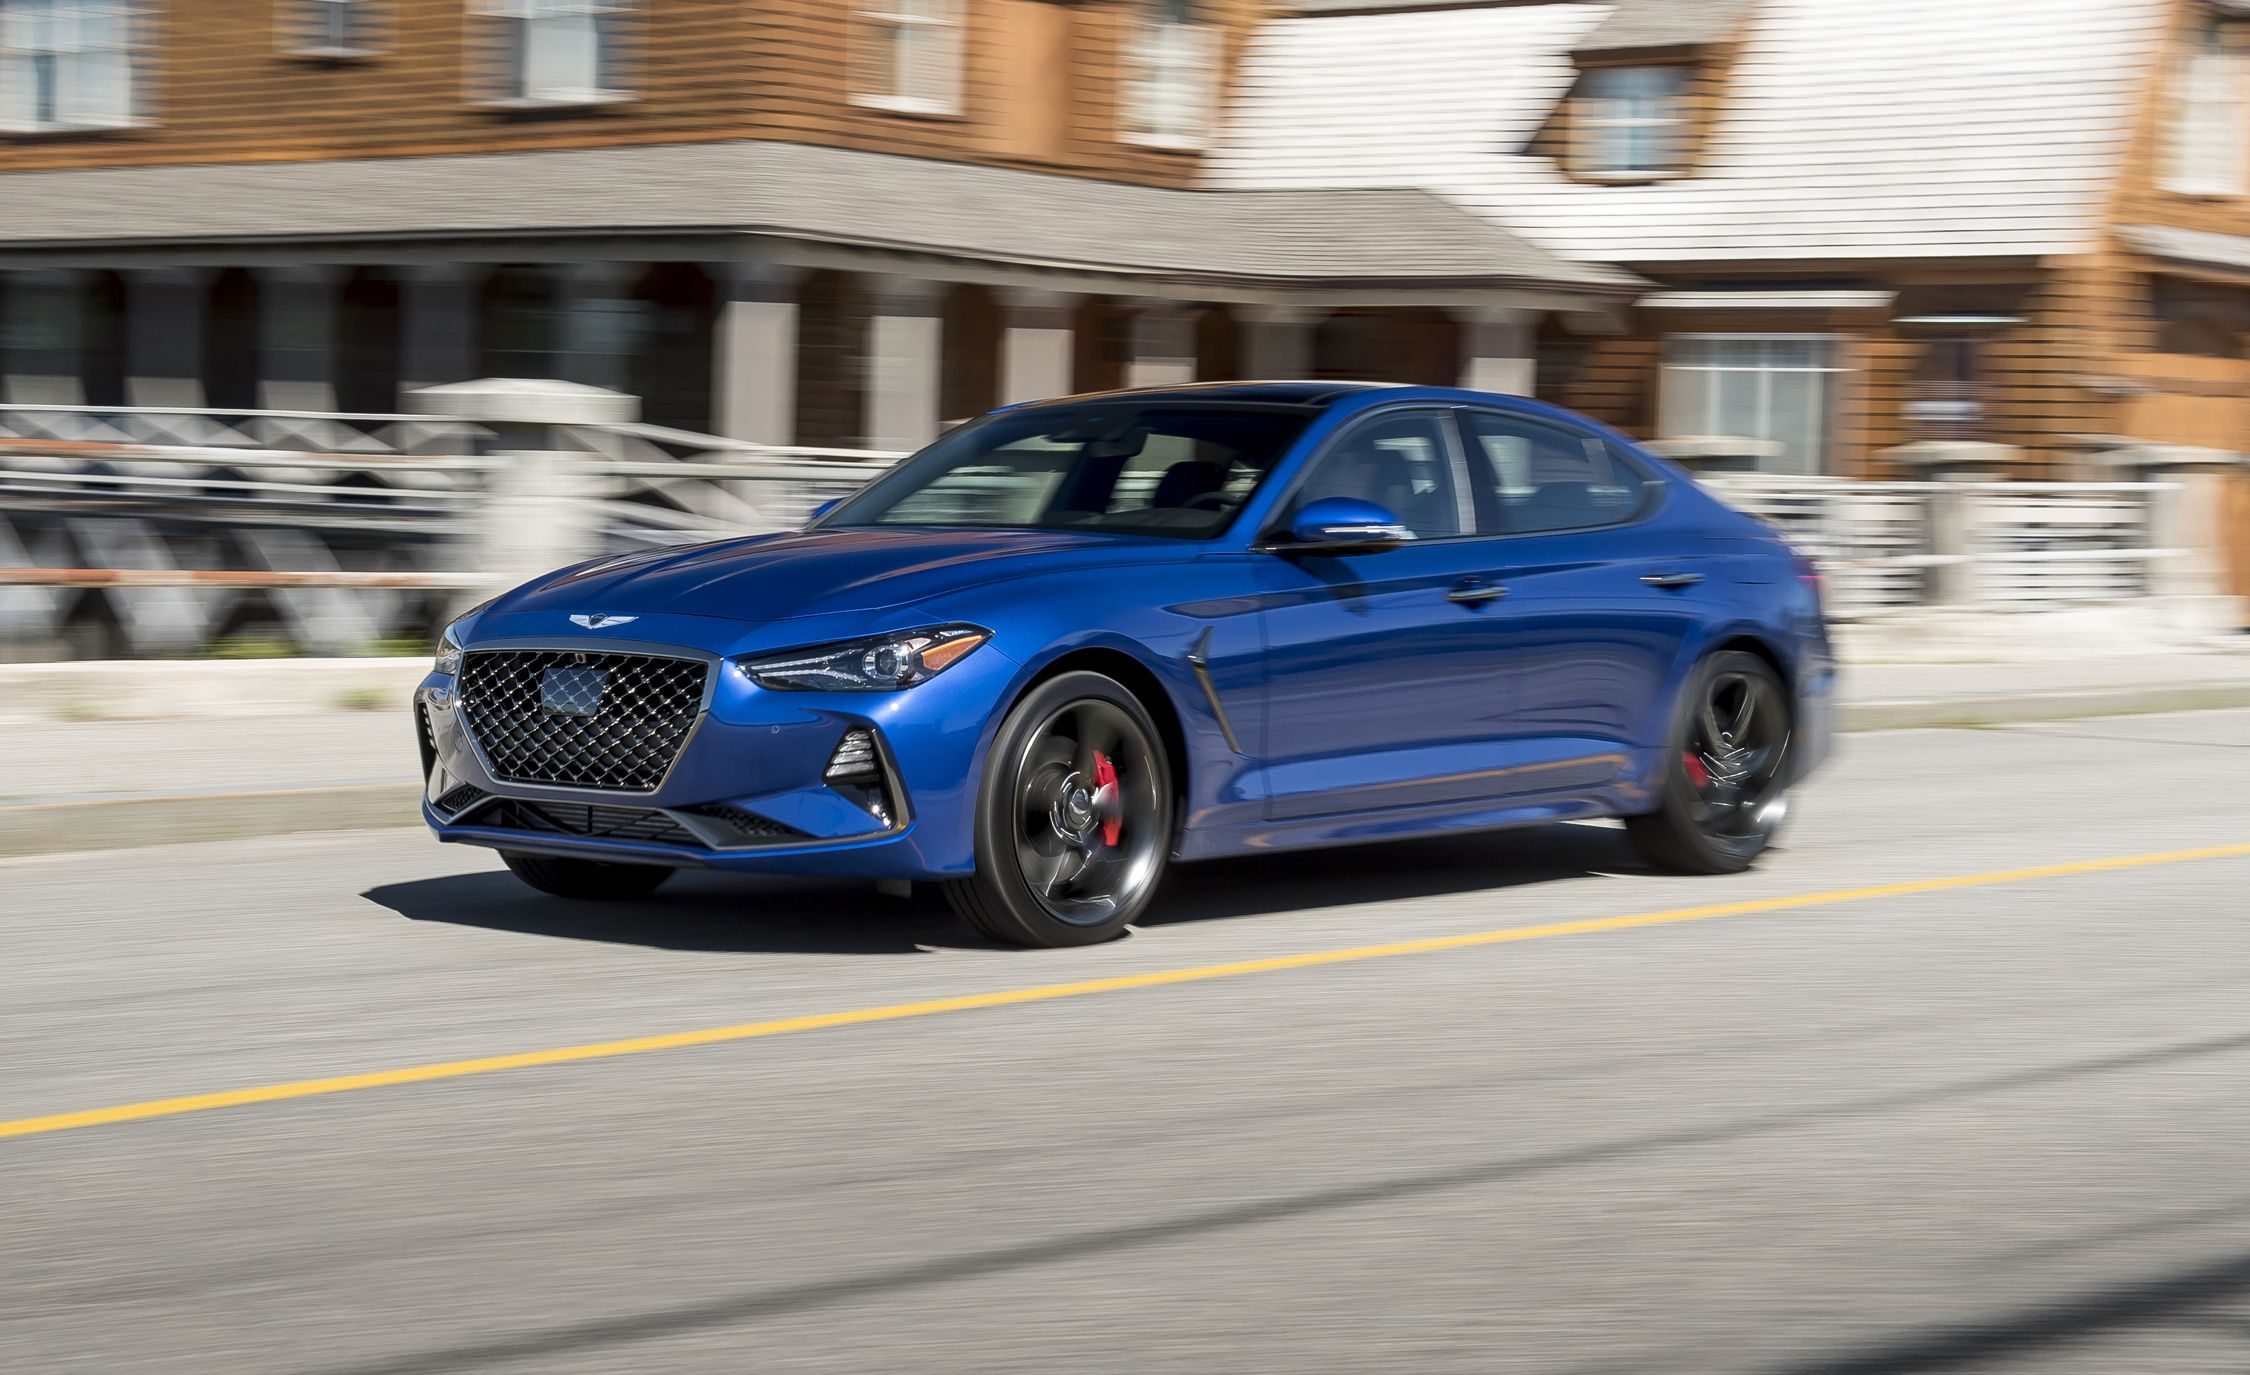 genesis g70 reviews genesis g70 price photos and specs car and driver. Black Bedroom Furniture Sets. Home Design Ideas